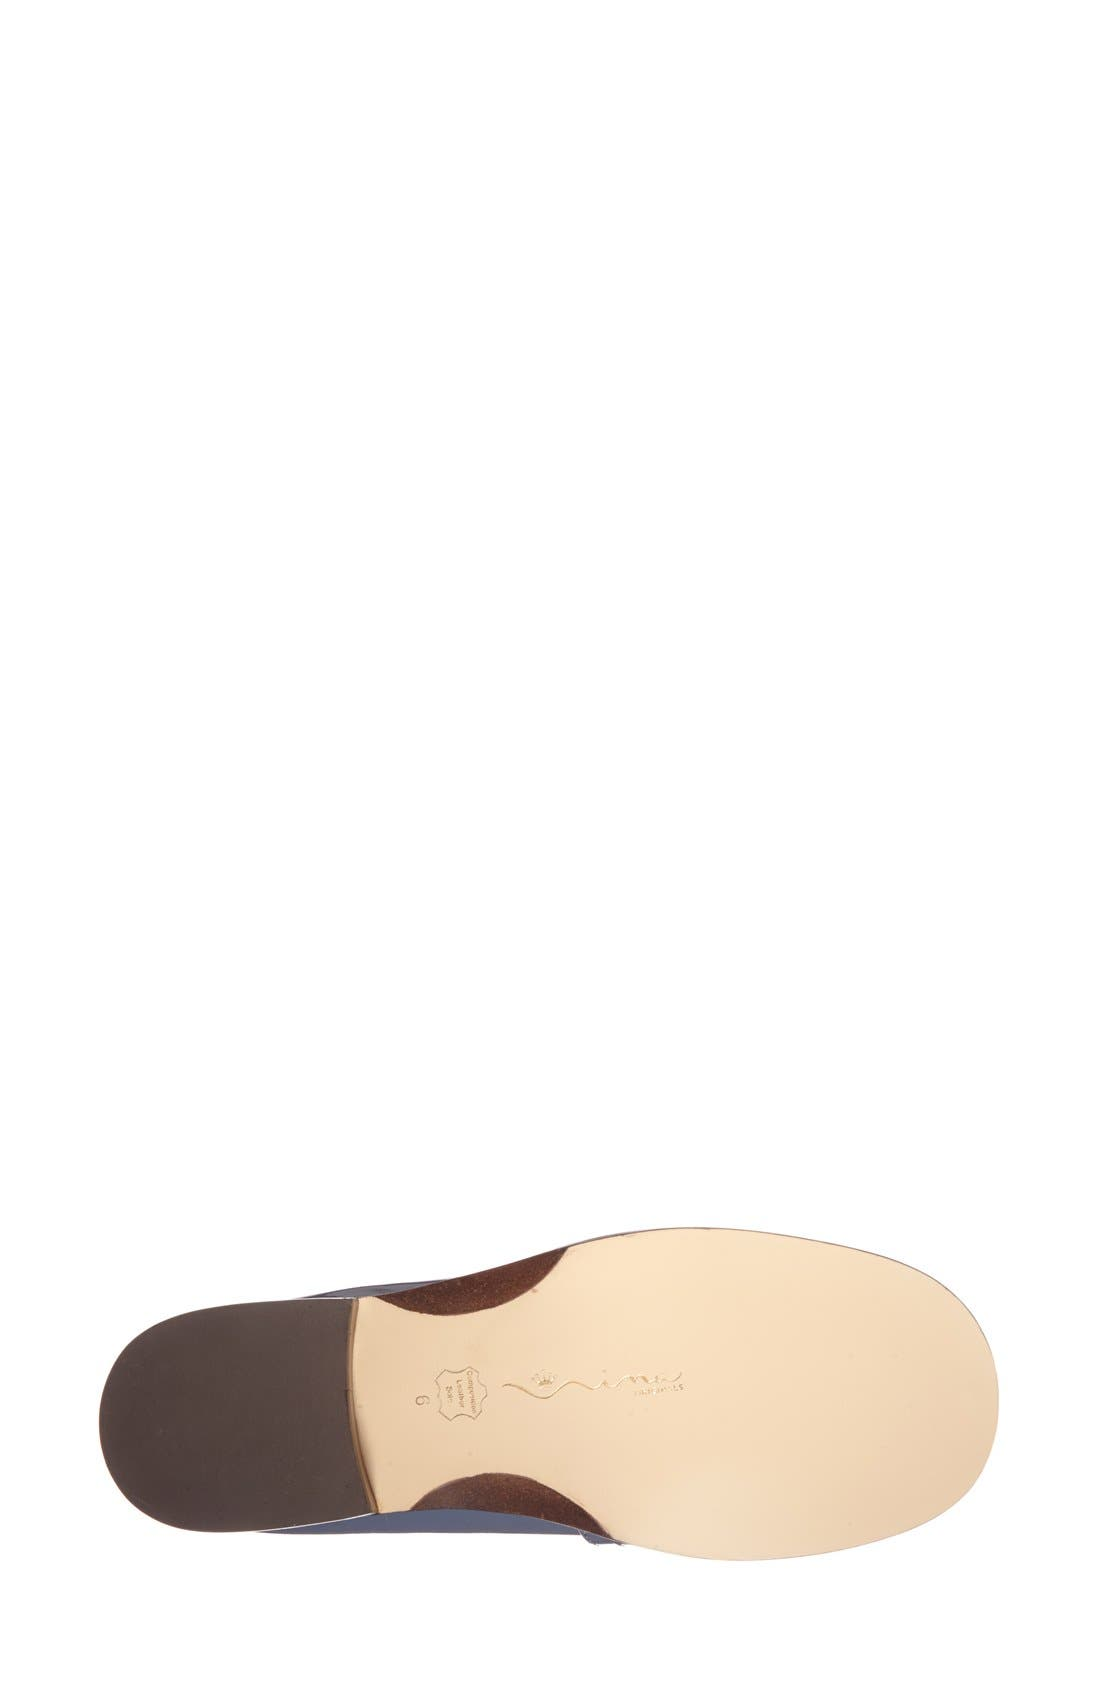 'Mystique' Penny Loafer,                             Alternate thumbnail 4, color,                             405